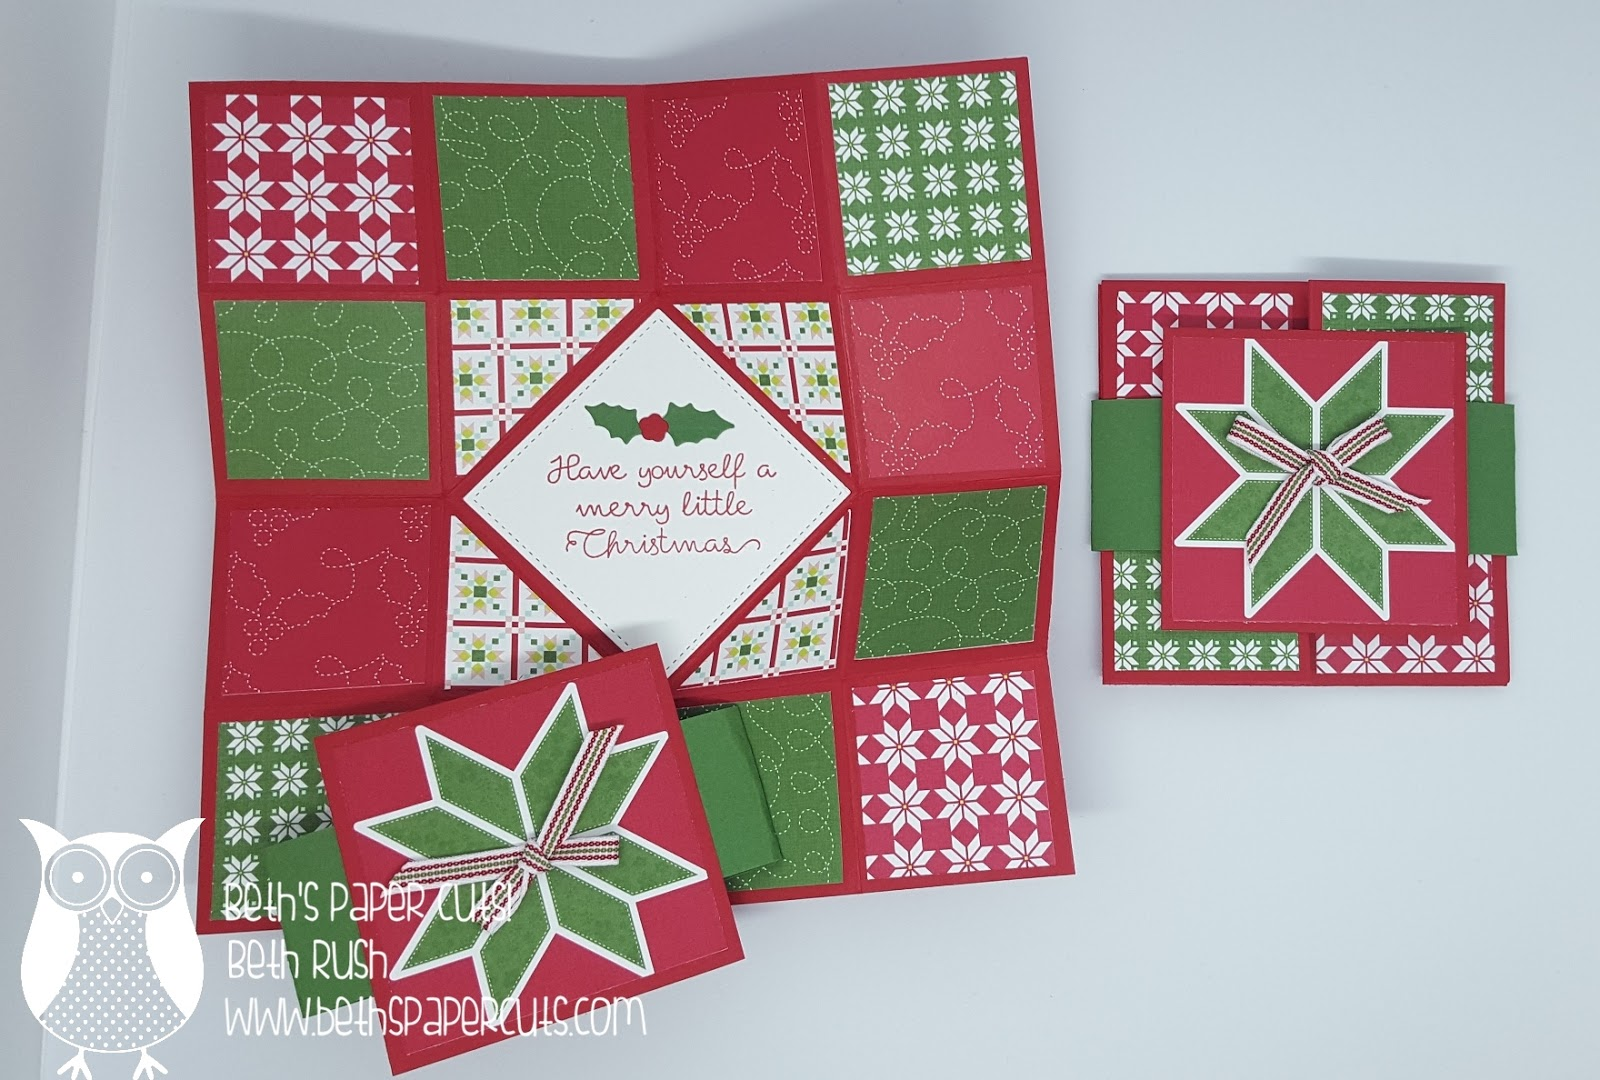 Beths paper cuts christmas quilt origami fun fold christmas quilt origami fun fold jeuxipadfo Image collections